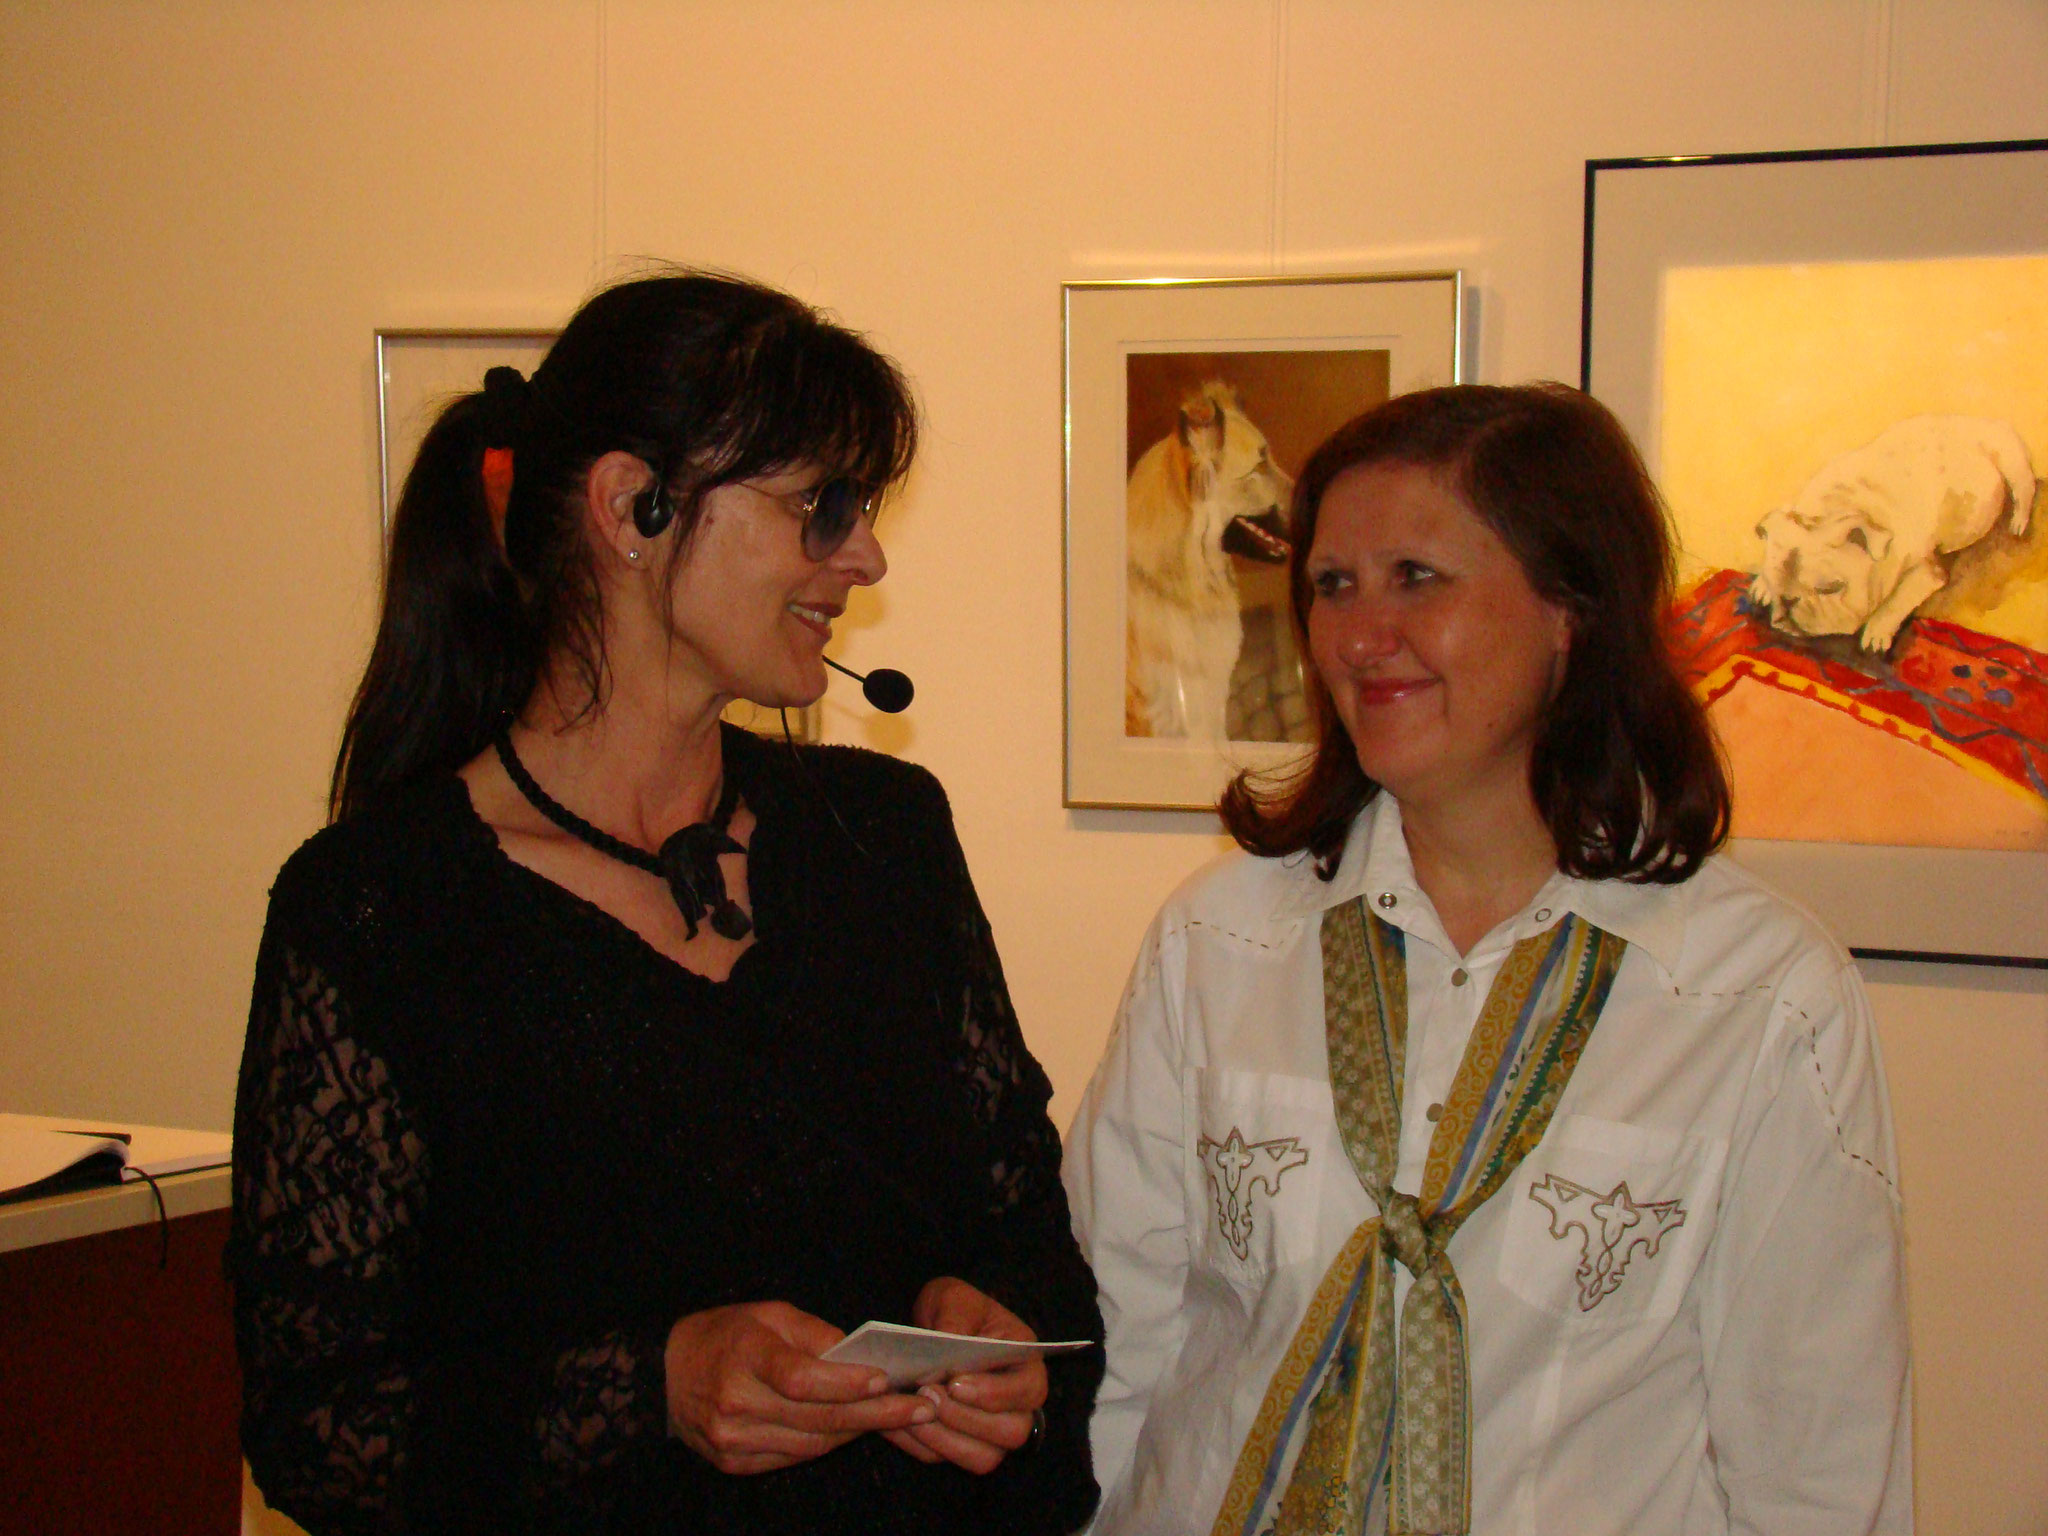 Roswitha Wagner & Gertrude Prinz